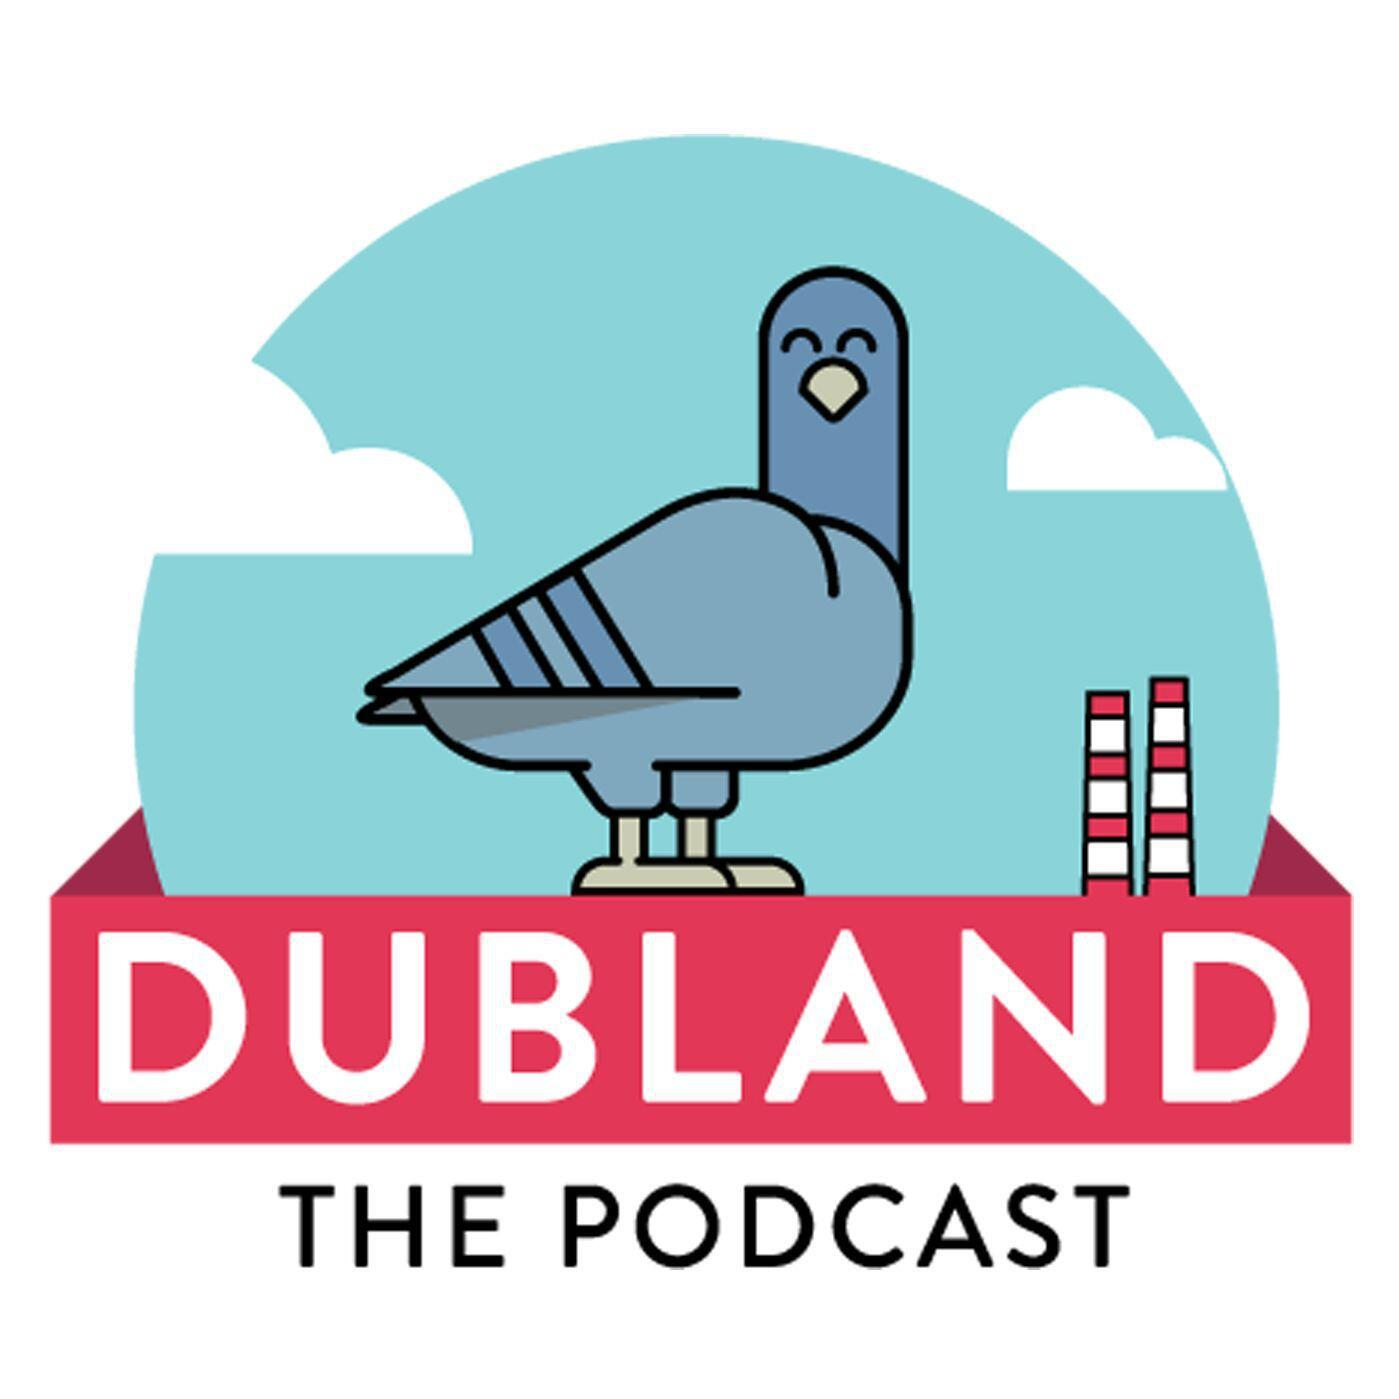 68 Dubland The Podcast